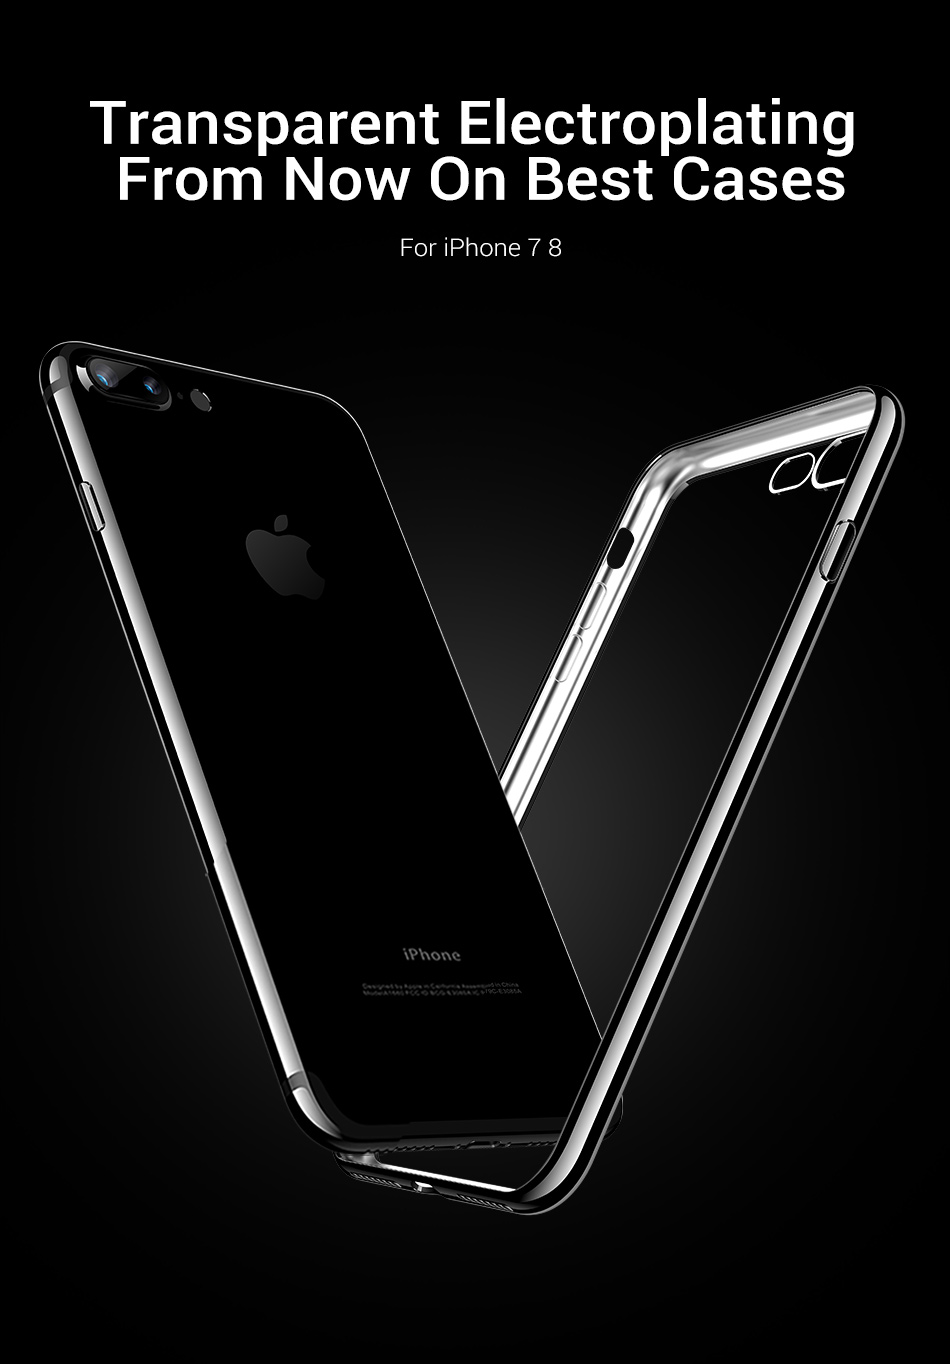 iPhone7Plus--950-180423_01